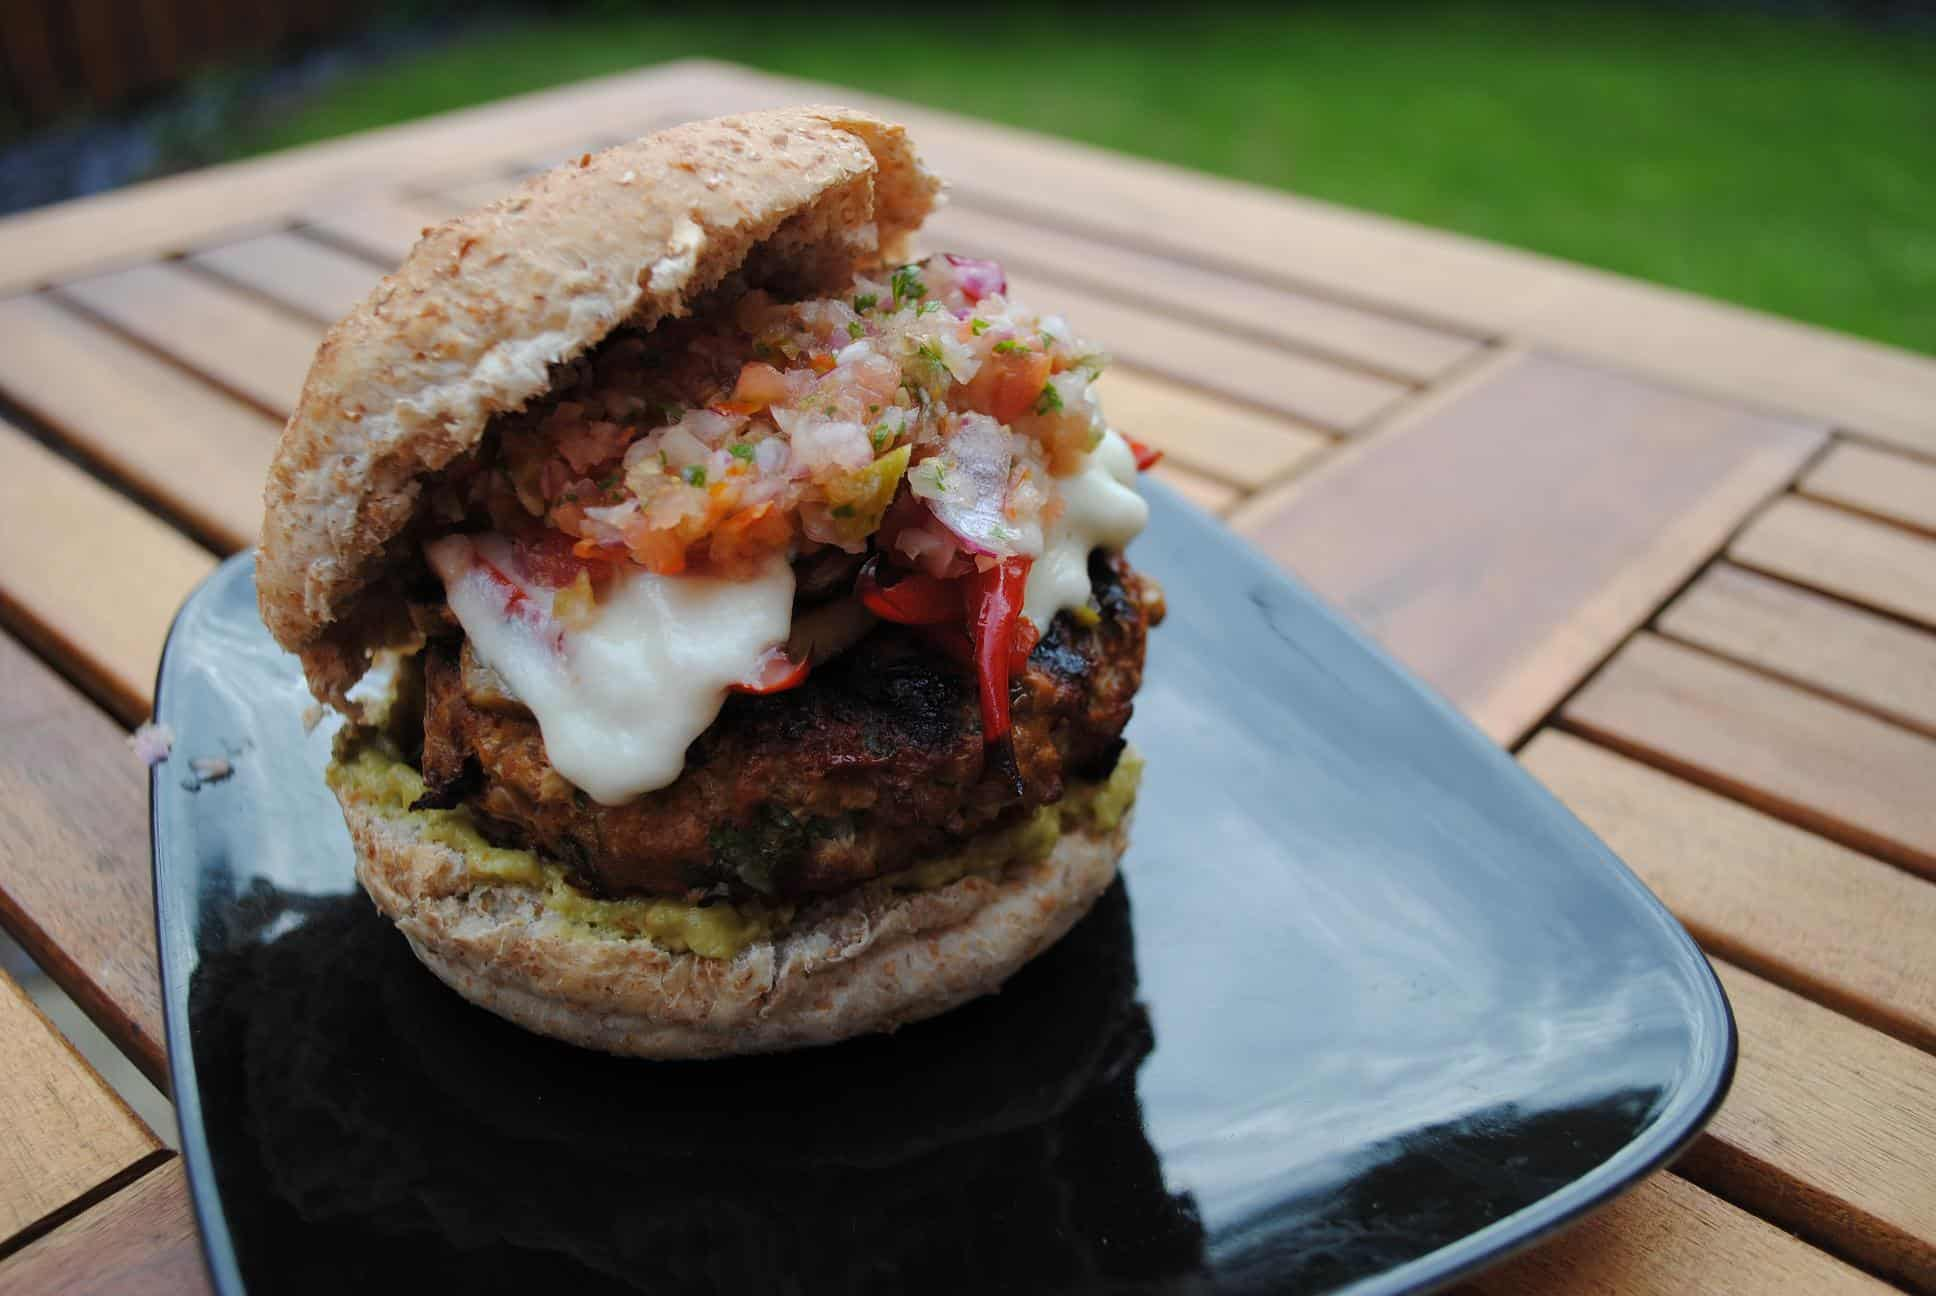 Mexican burger on a black plate on a wooden table